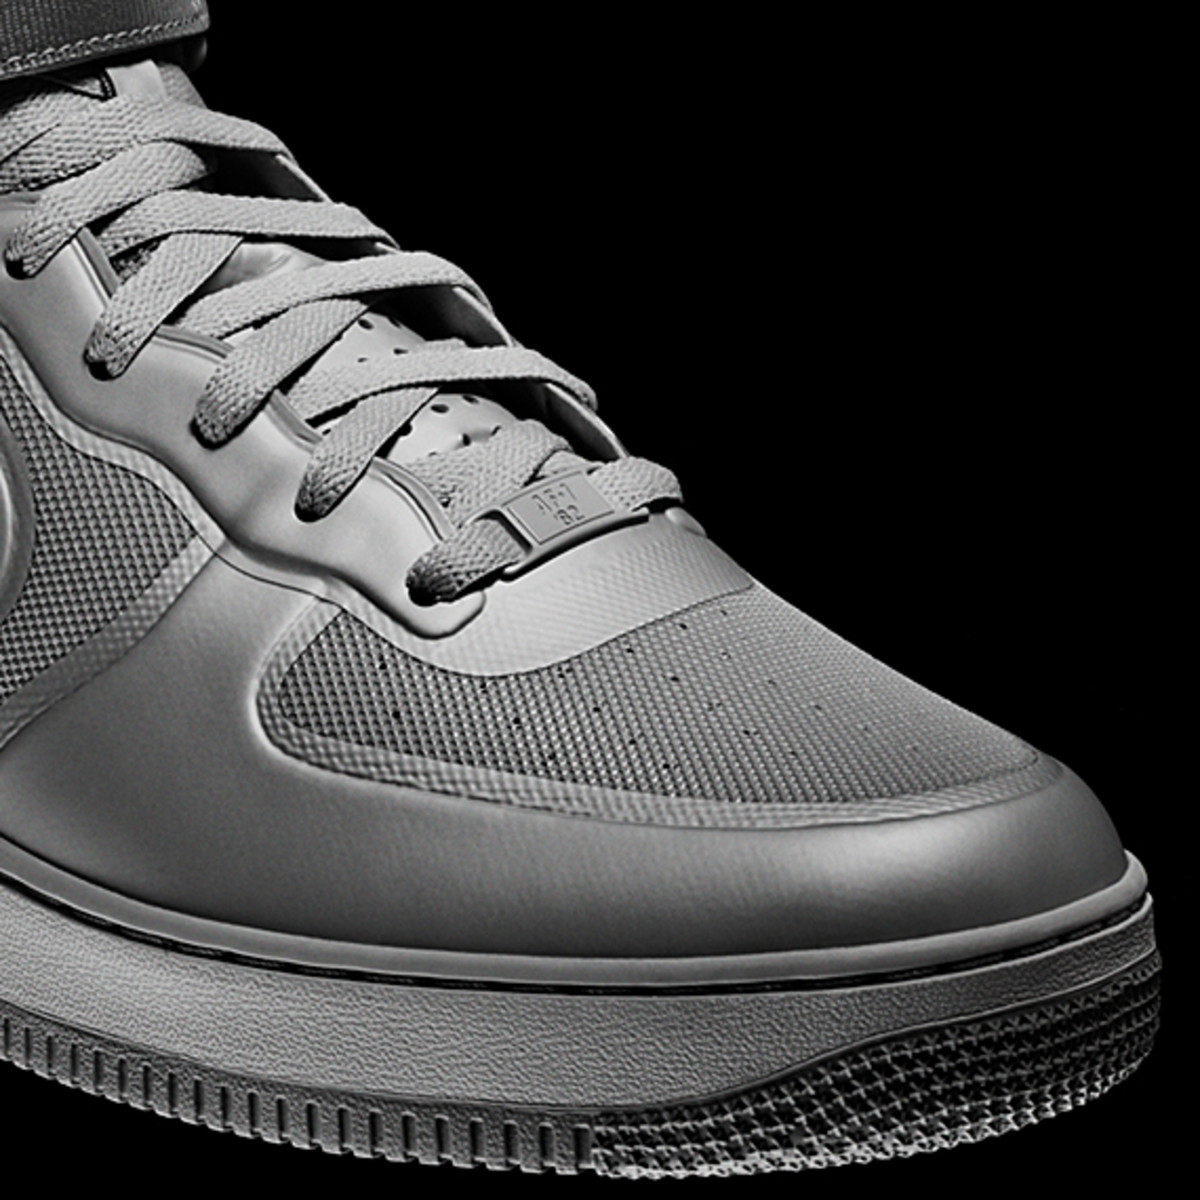 nike-sportswear-air-force-one-hyperfuse-08